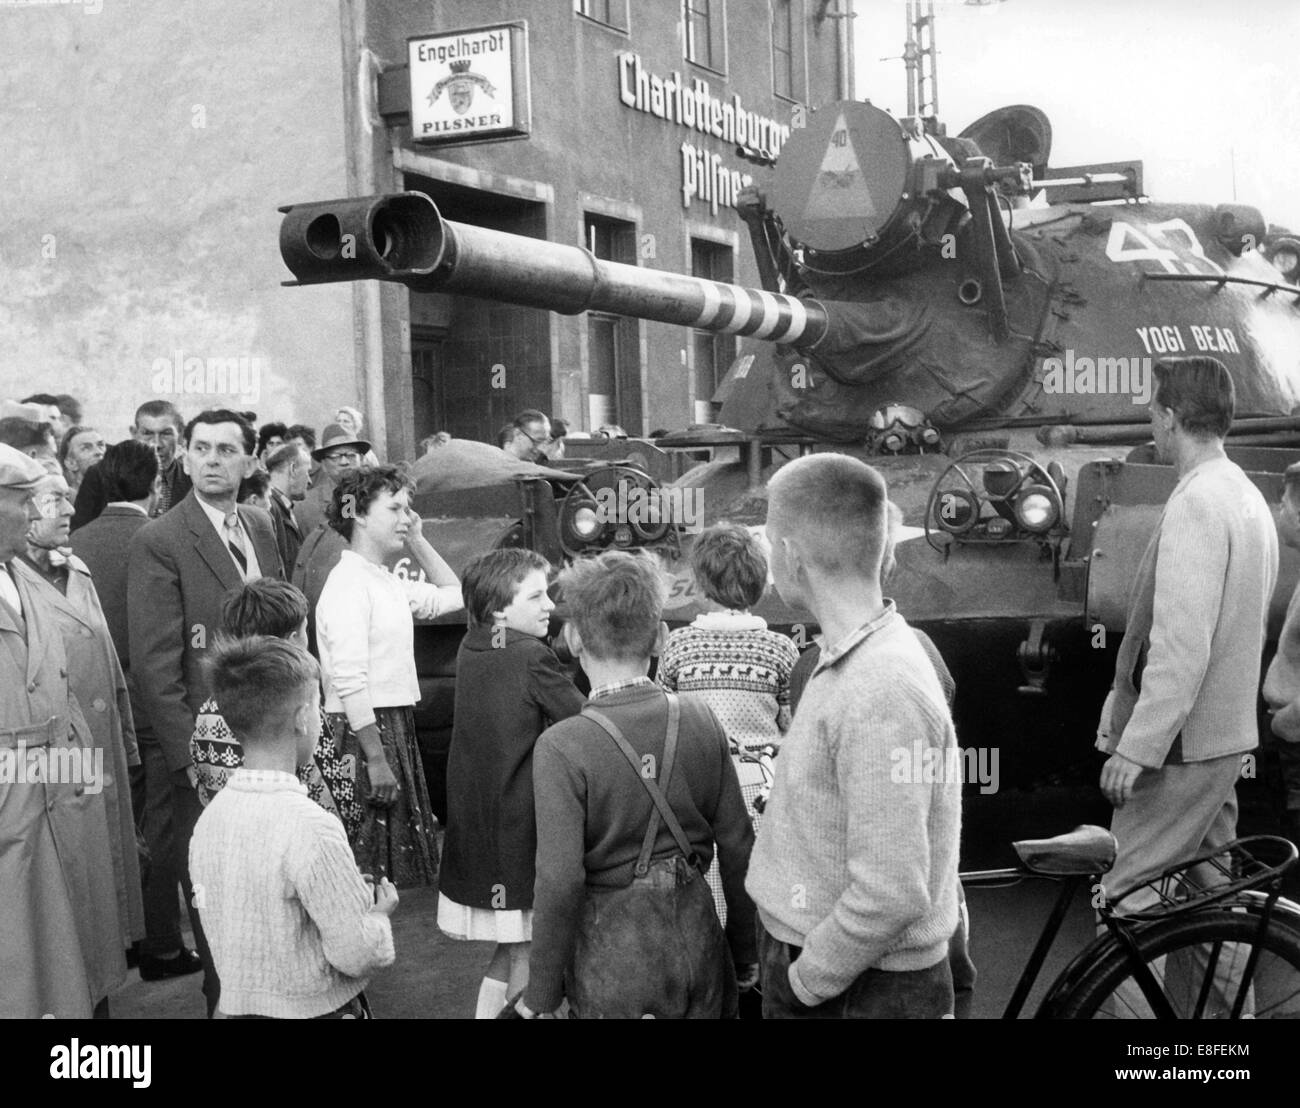 West Berlins standing at a heavy Patton tank of the US Army on 23rd August 1961 at checkpoint Friedrichstraße in the western part of Berlin. From the 13th of August in 1961, the day of the construction of the Wall, until the fall of the Wall on the 9th of November in 1989, the Federal Republic of Germany and the GDR were seperated into West and East by the Iron Curtain. Stock Photo